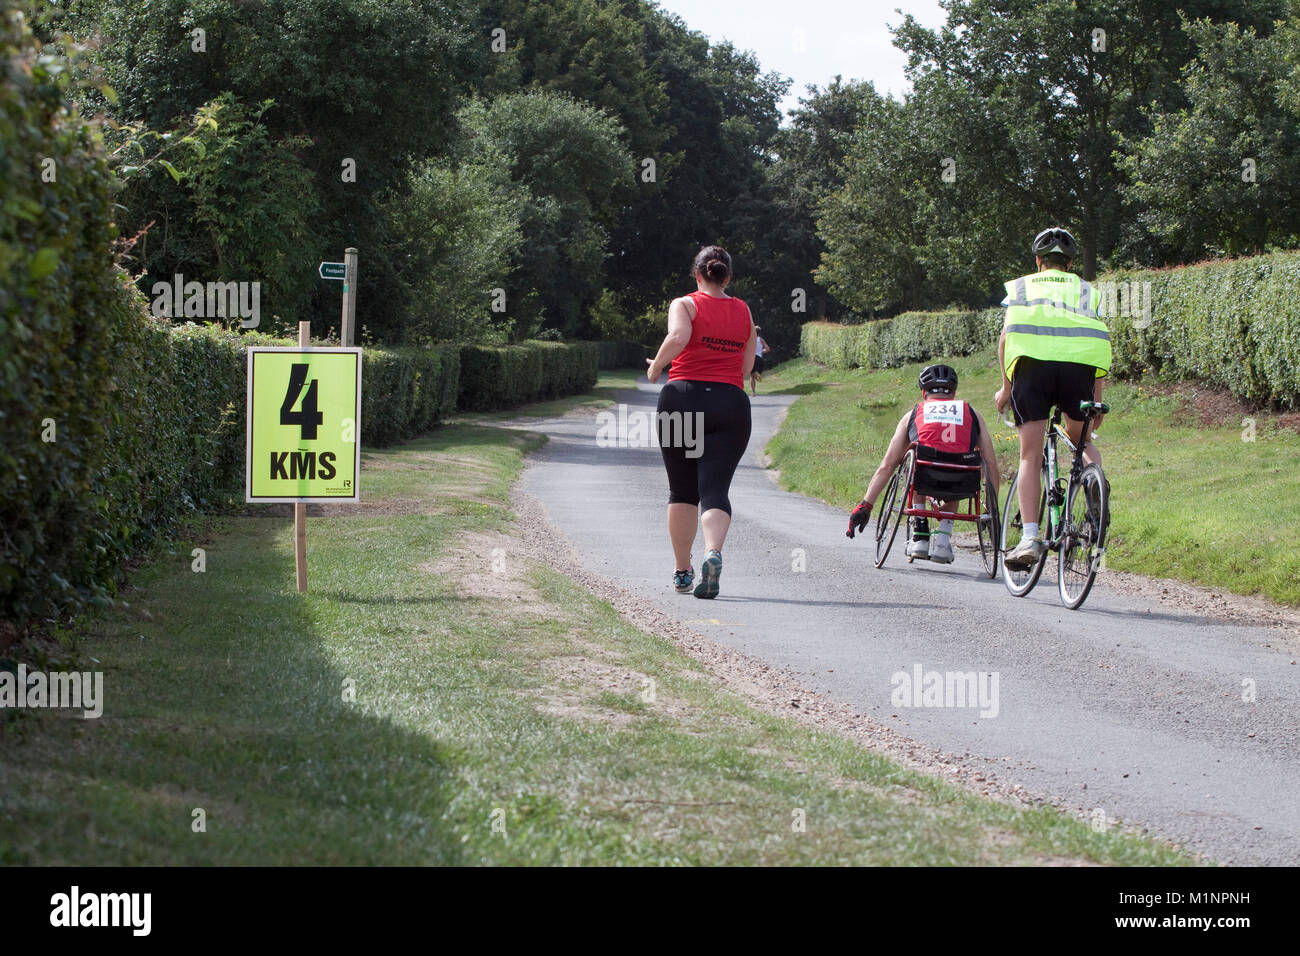 Wheelchair athlete with cycle marshal and woman runner pass 4 km sign - Stock Image